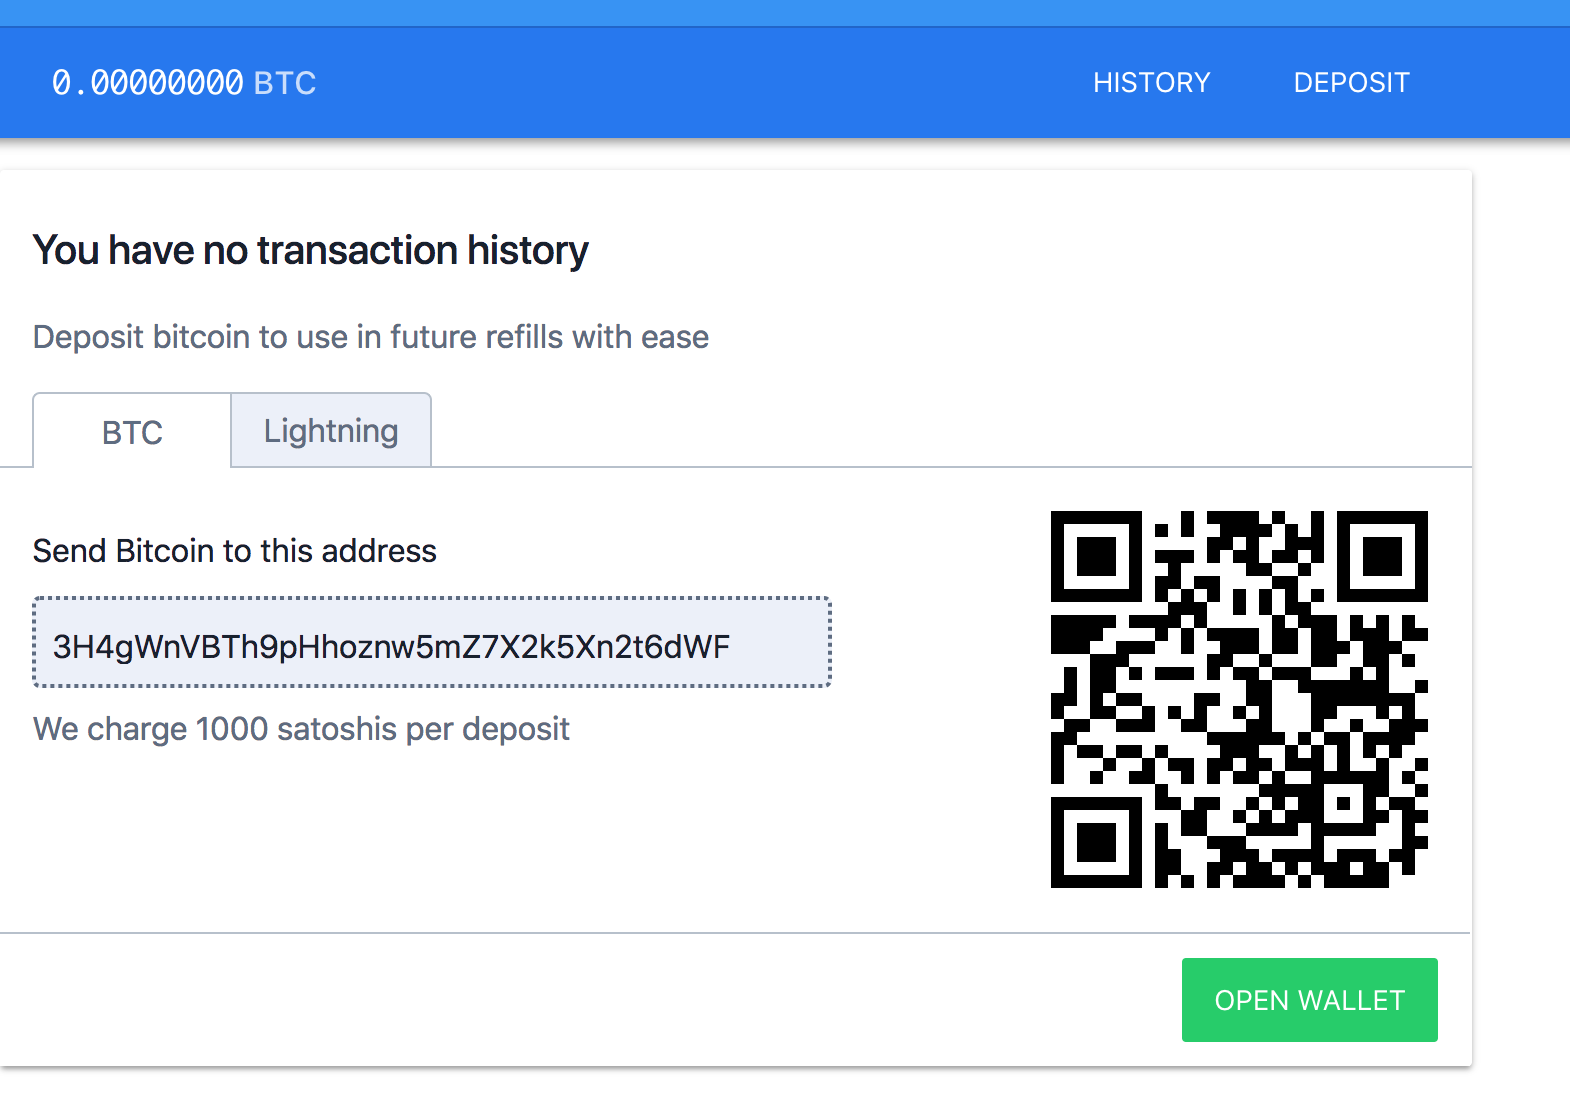 Receiving RBF Transaction - No incoming transactions show initially during original transaction. This delay could have been related to delays in relaying the transaction in the Bitcoin network.